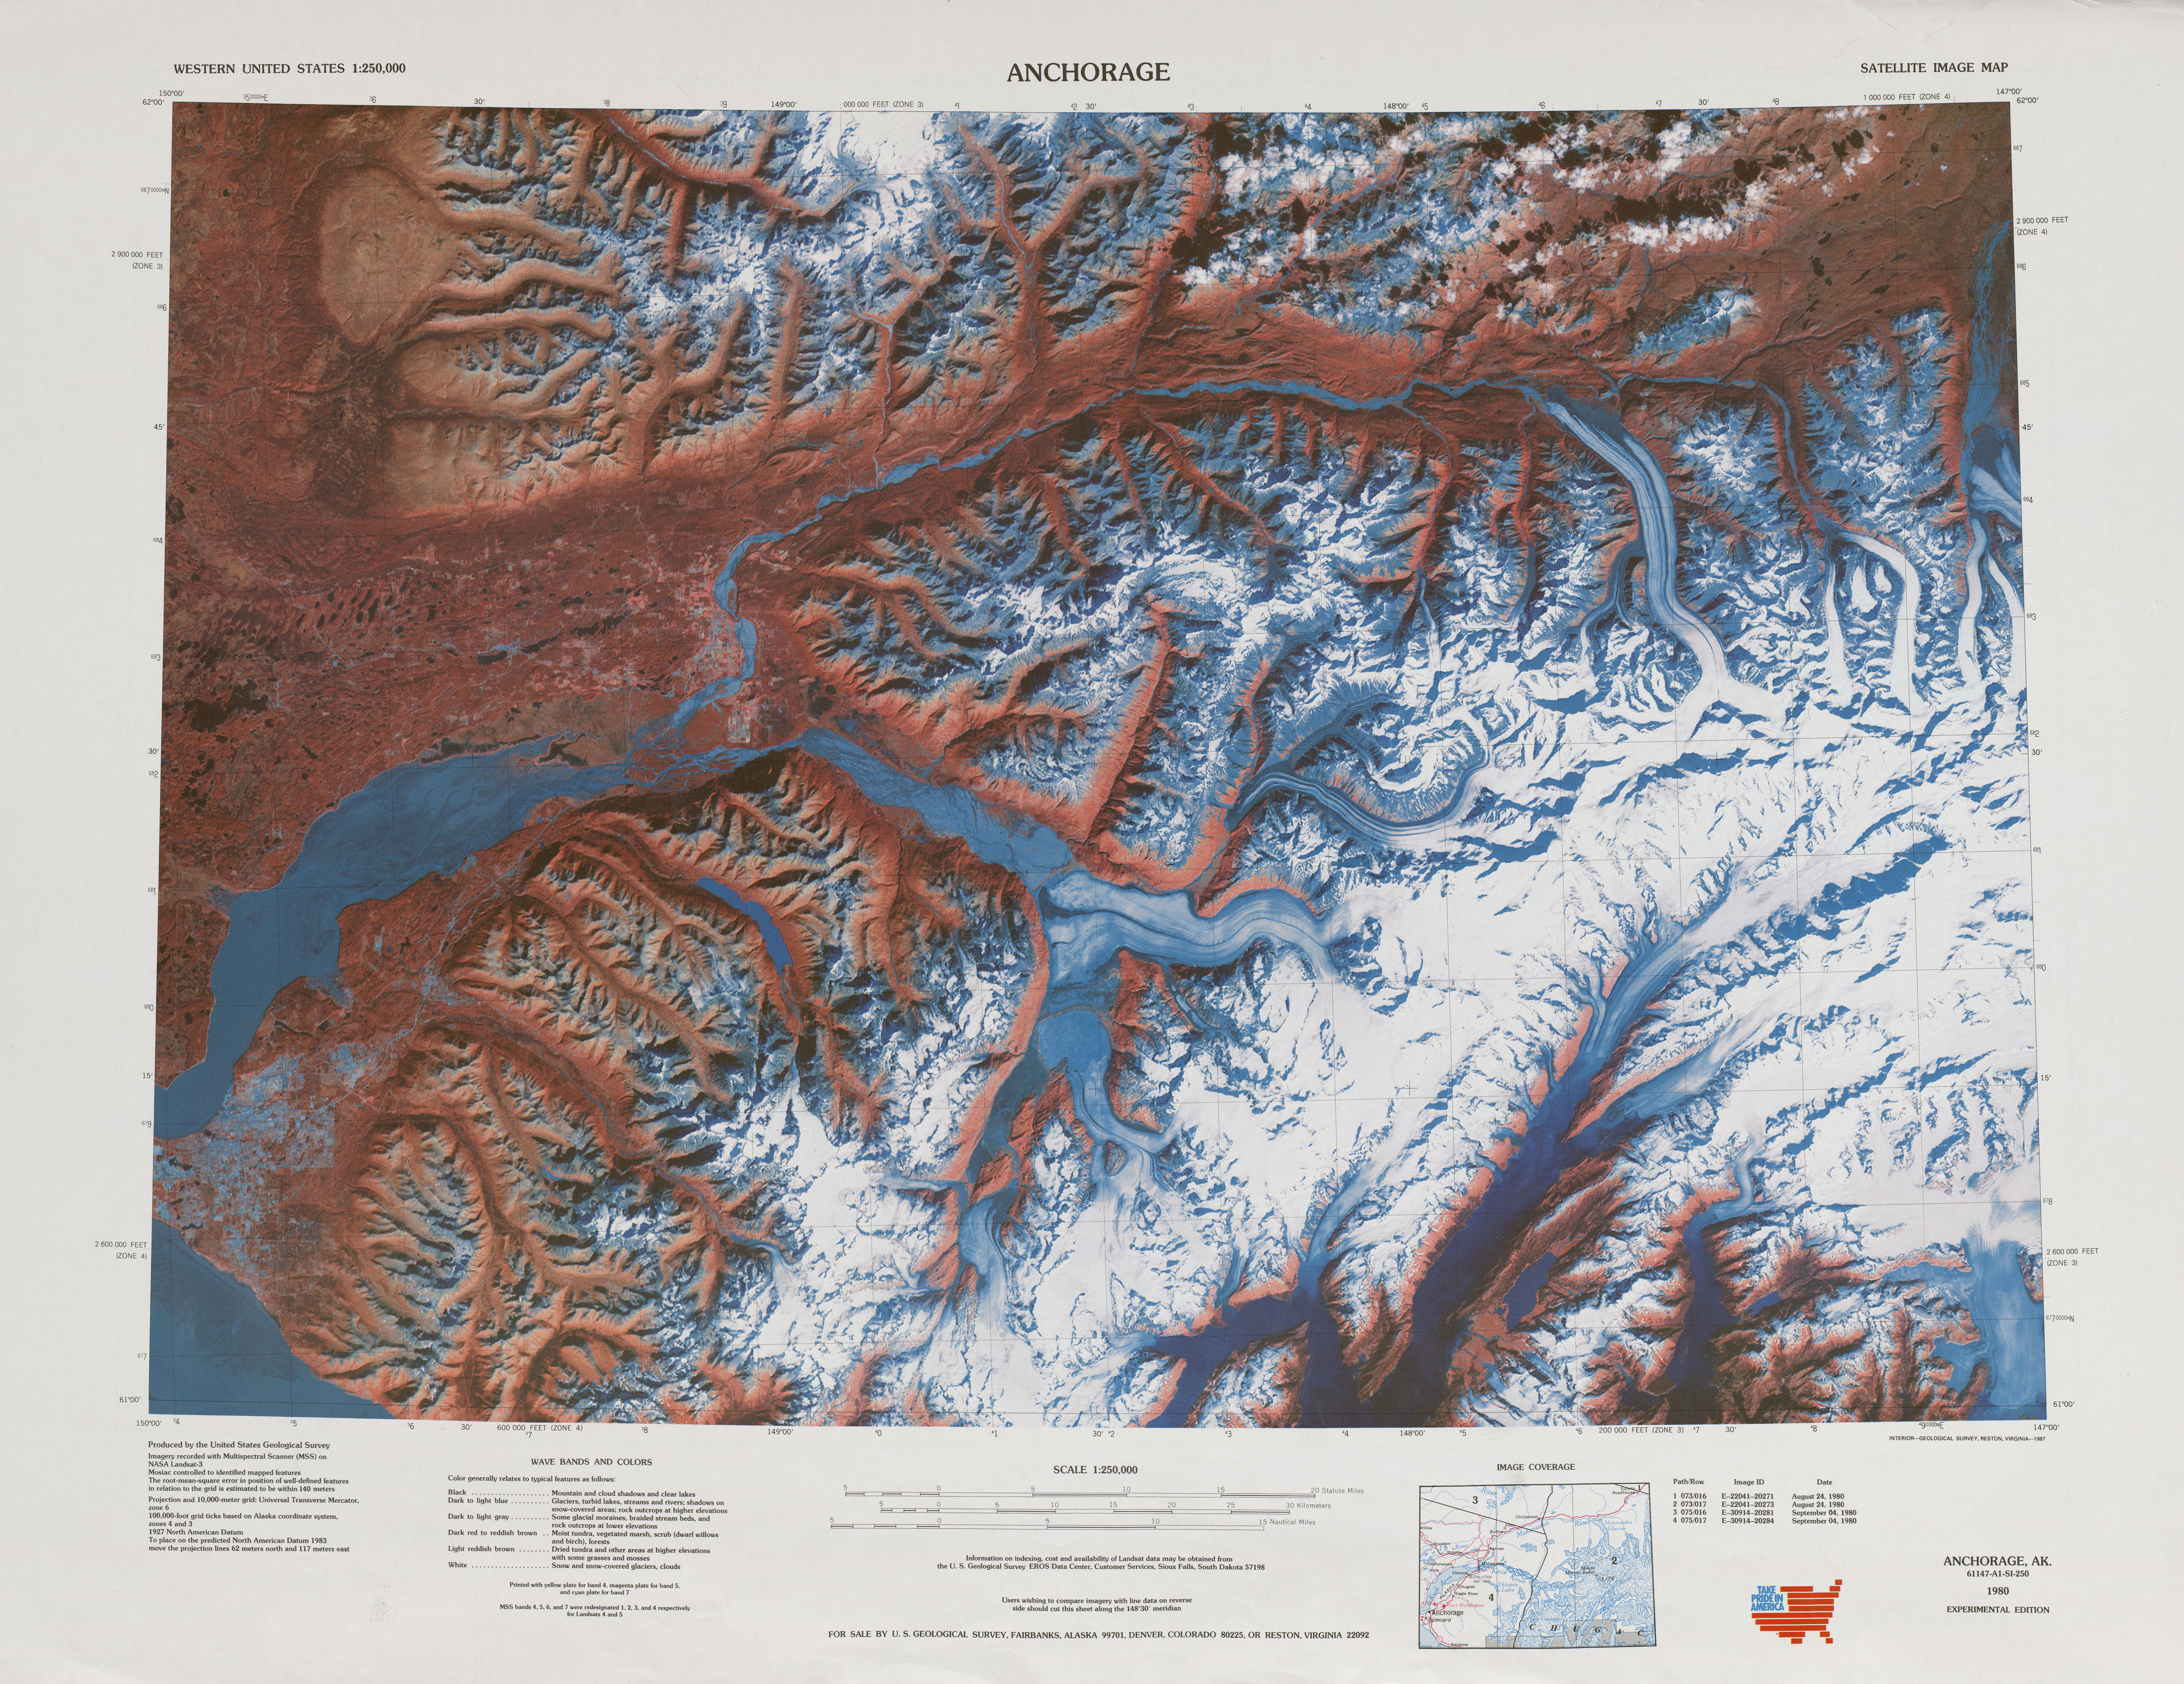 United States Topographic Maps 1:250,000 - Perry-Castañeda Map - 3D Topographic Map Of Texas